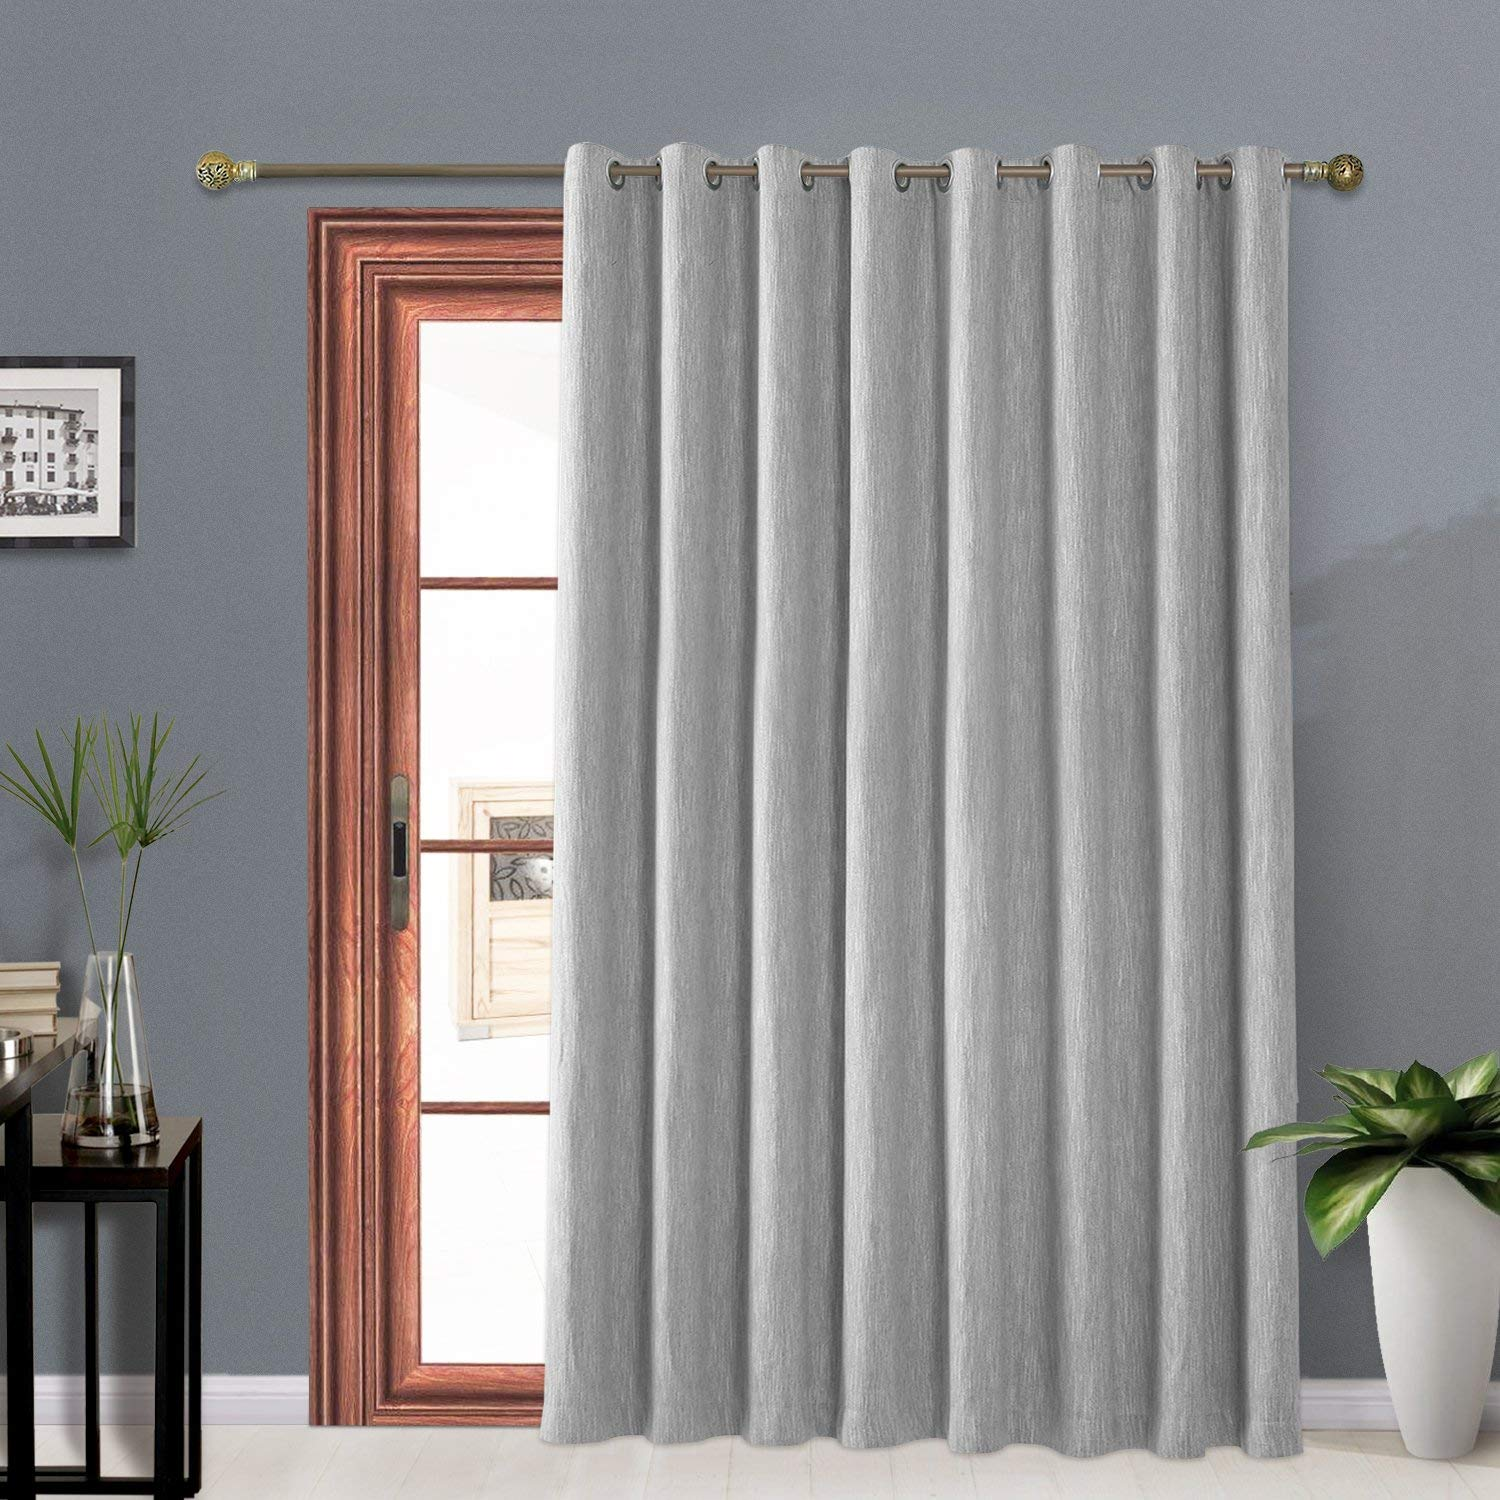 Curtains that keep the cold out Melodieux Elegant Curtains grey polyester cotton blend